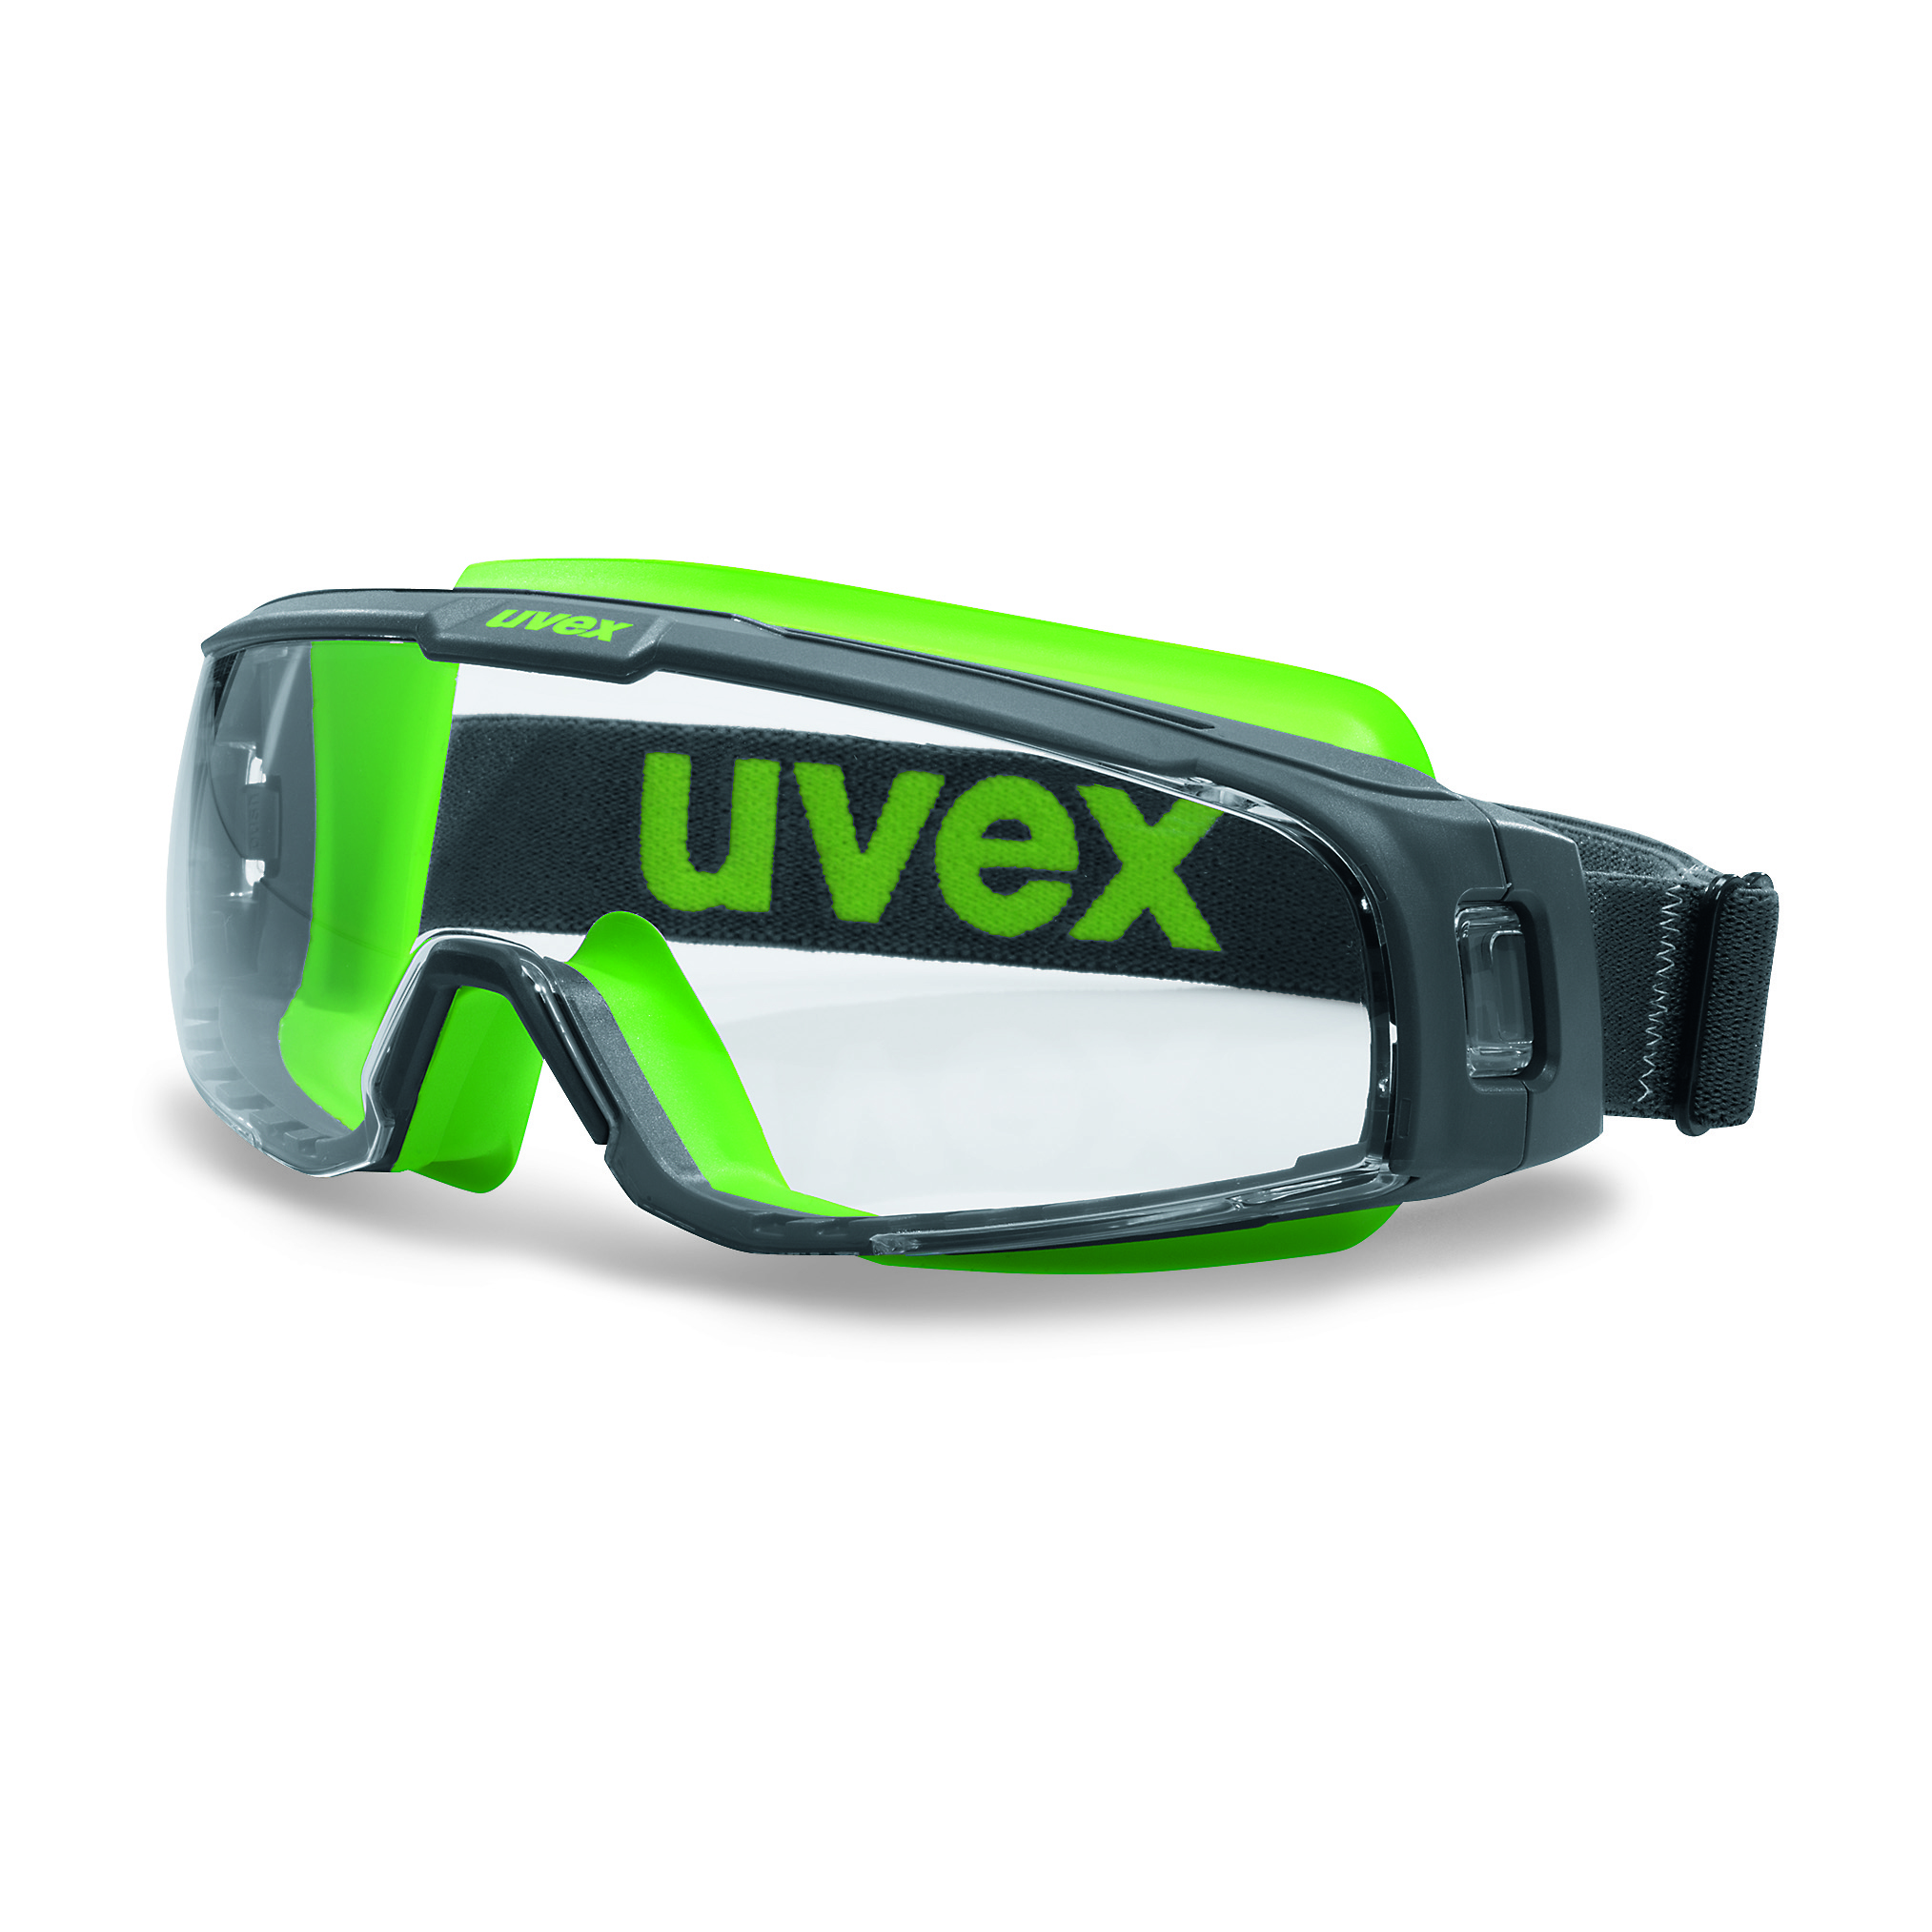 uvex goggle clear